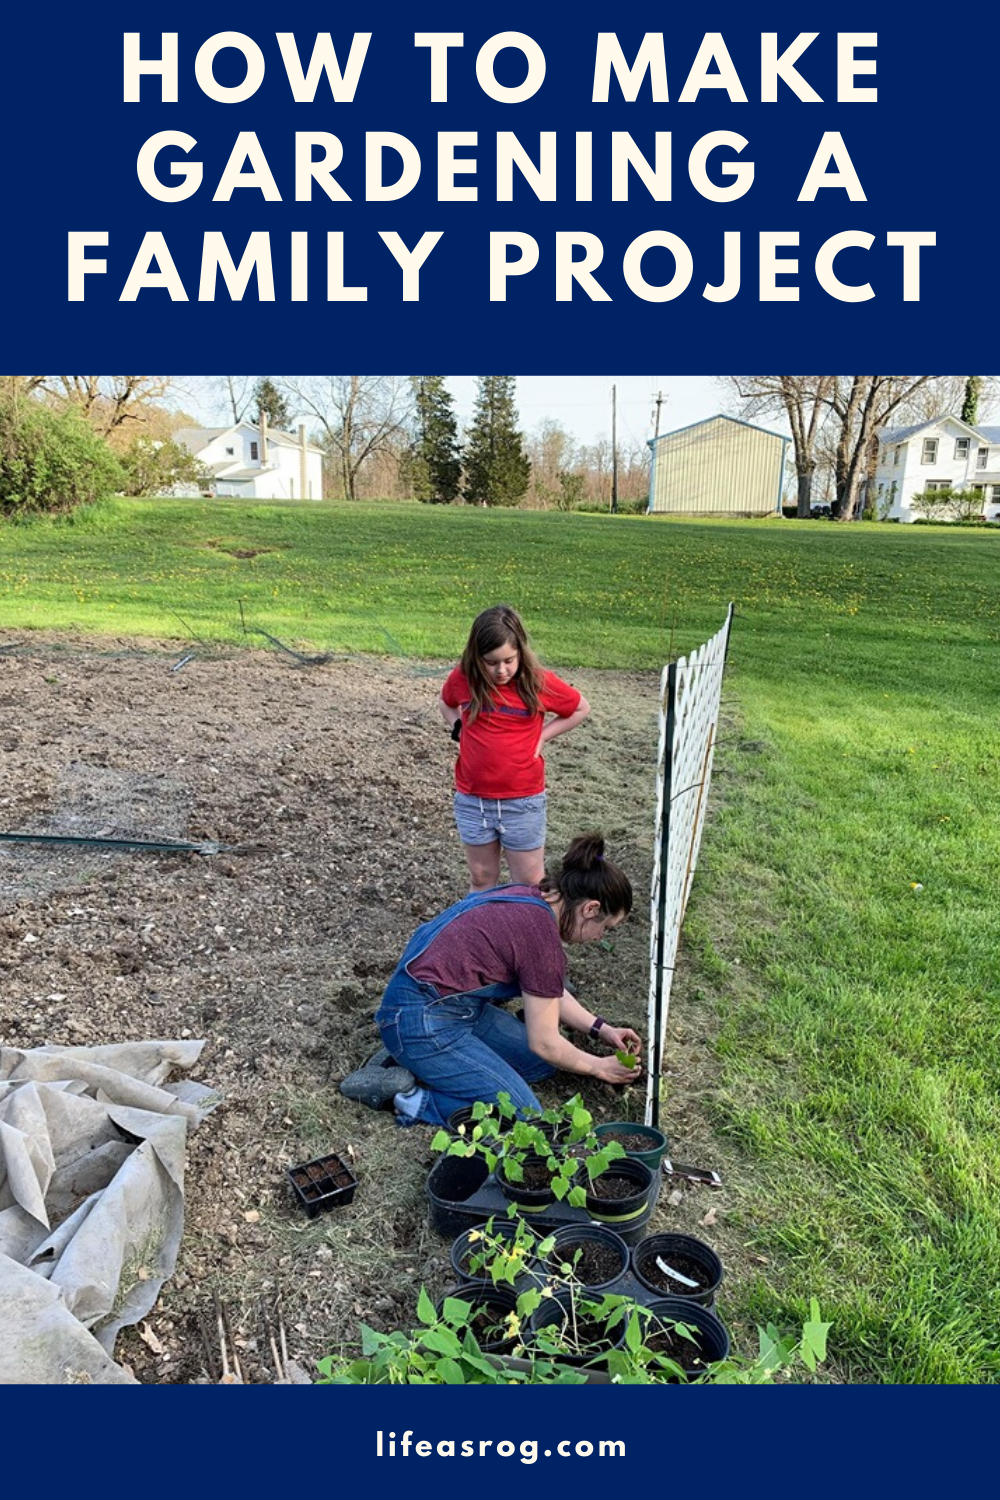 How to Make Gardening a Family Project